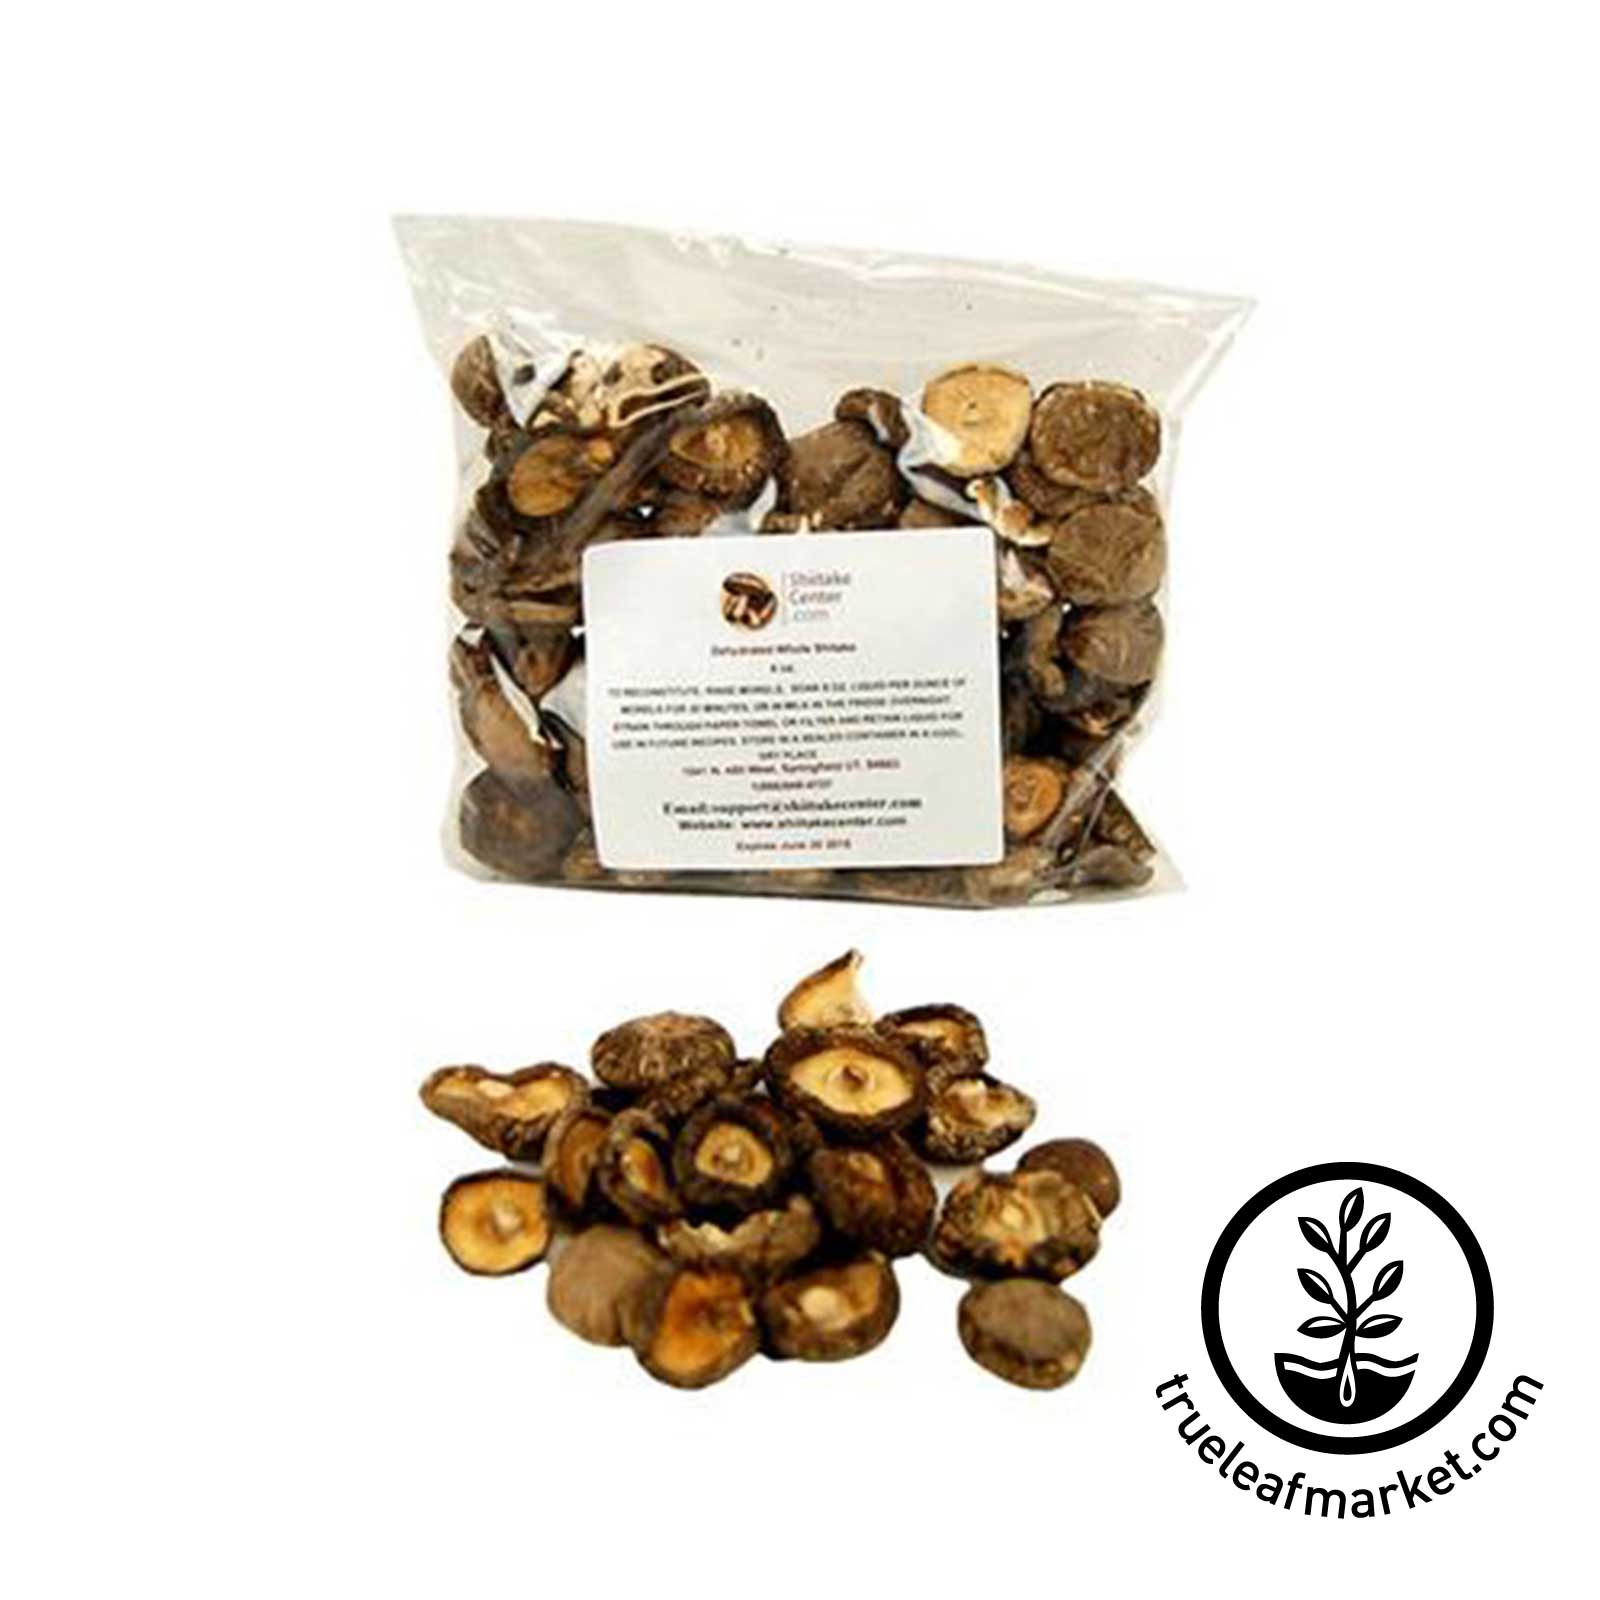 Dehydrated Whole Shiitake Mushrooms mushroom, dried, dehydrated, shiitake, lentinula, edodes